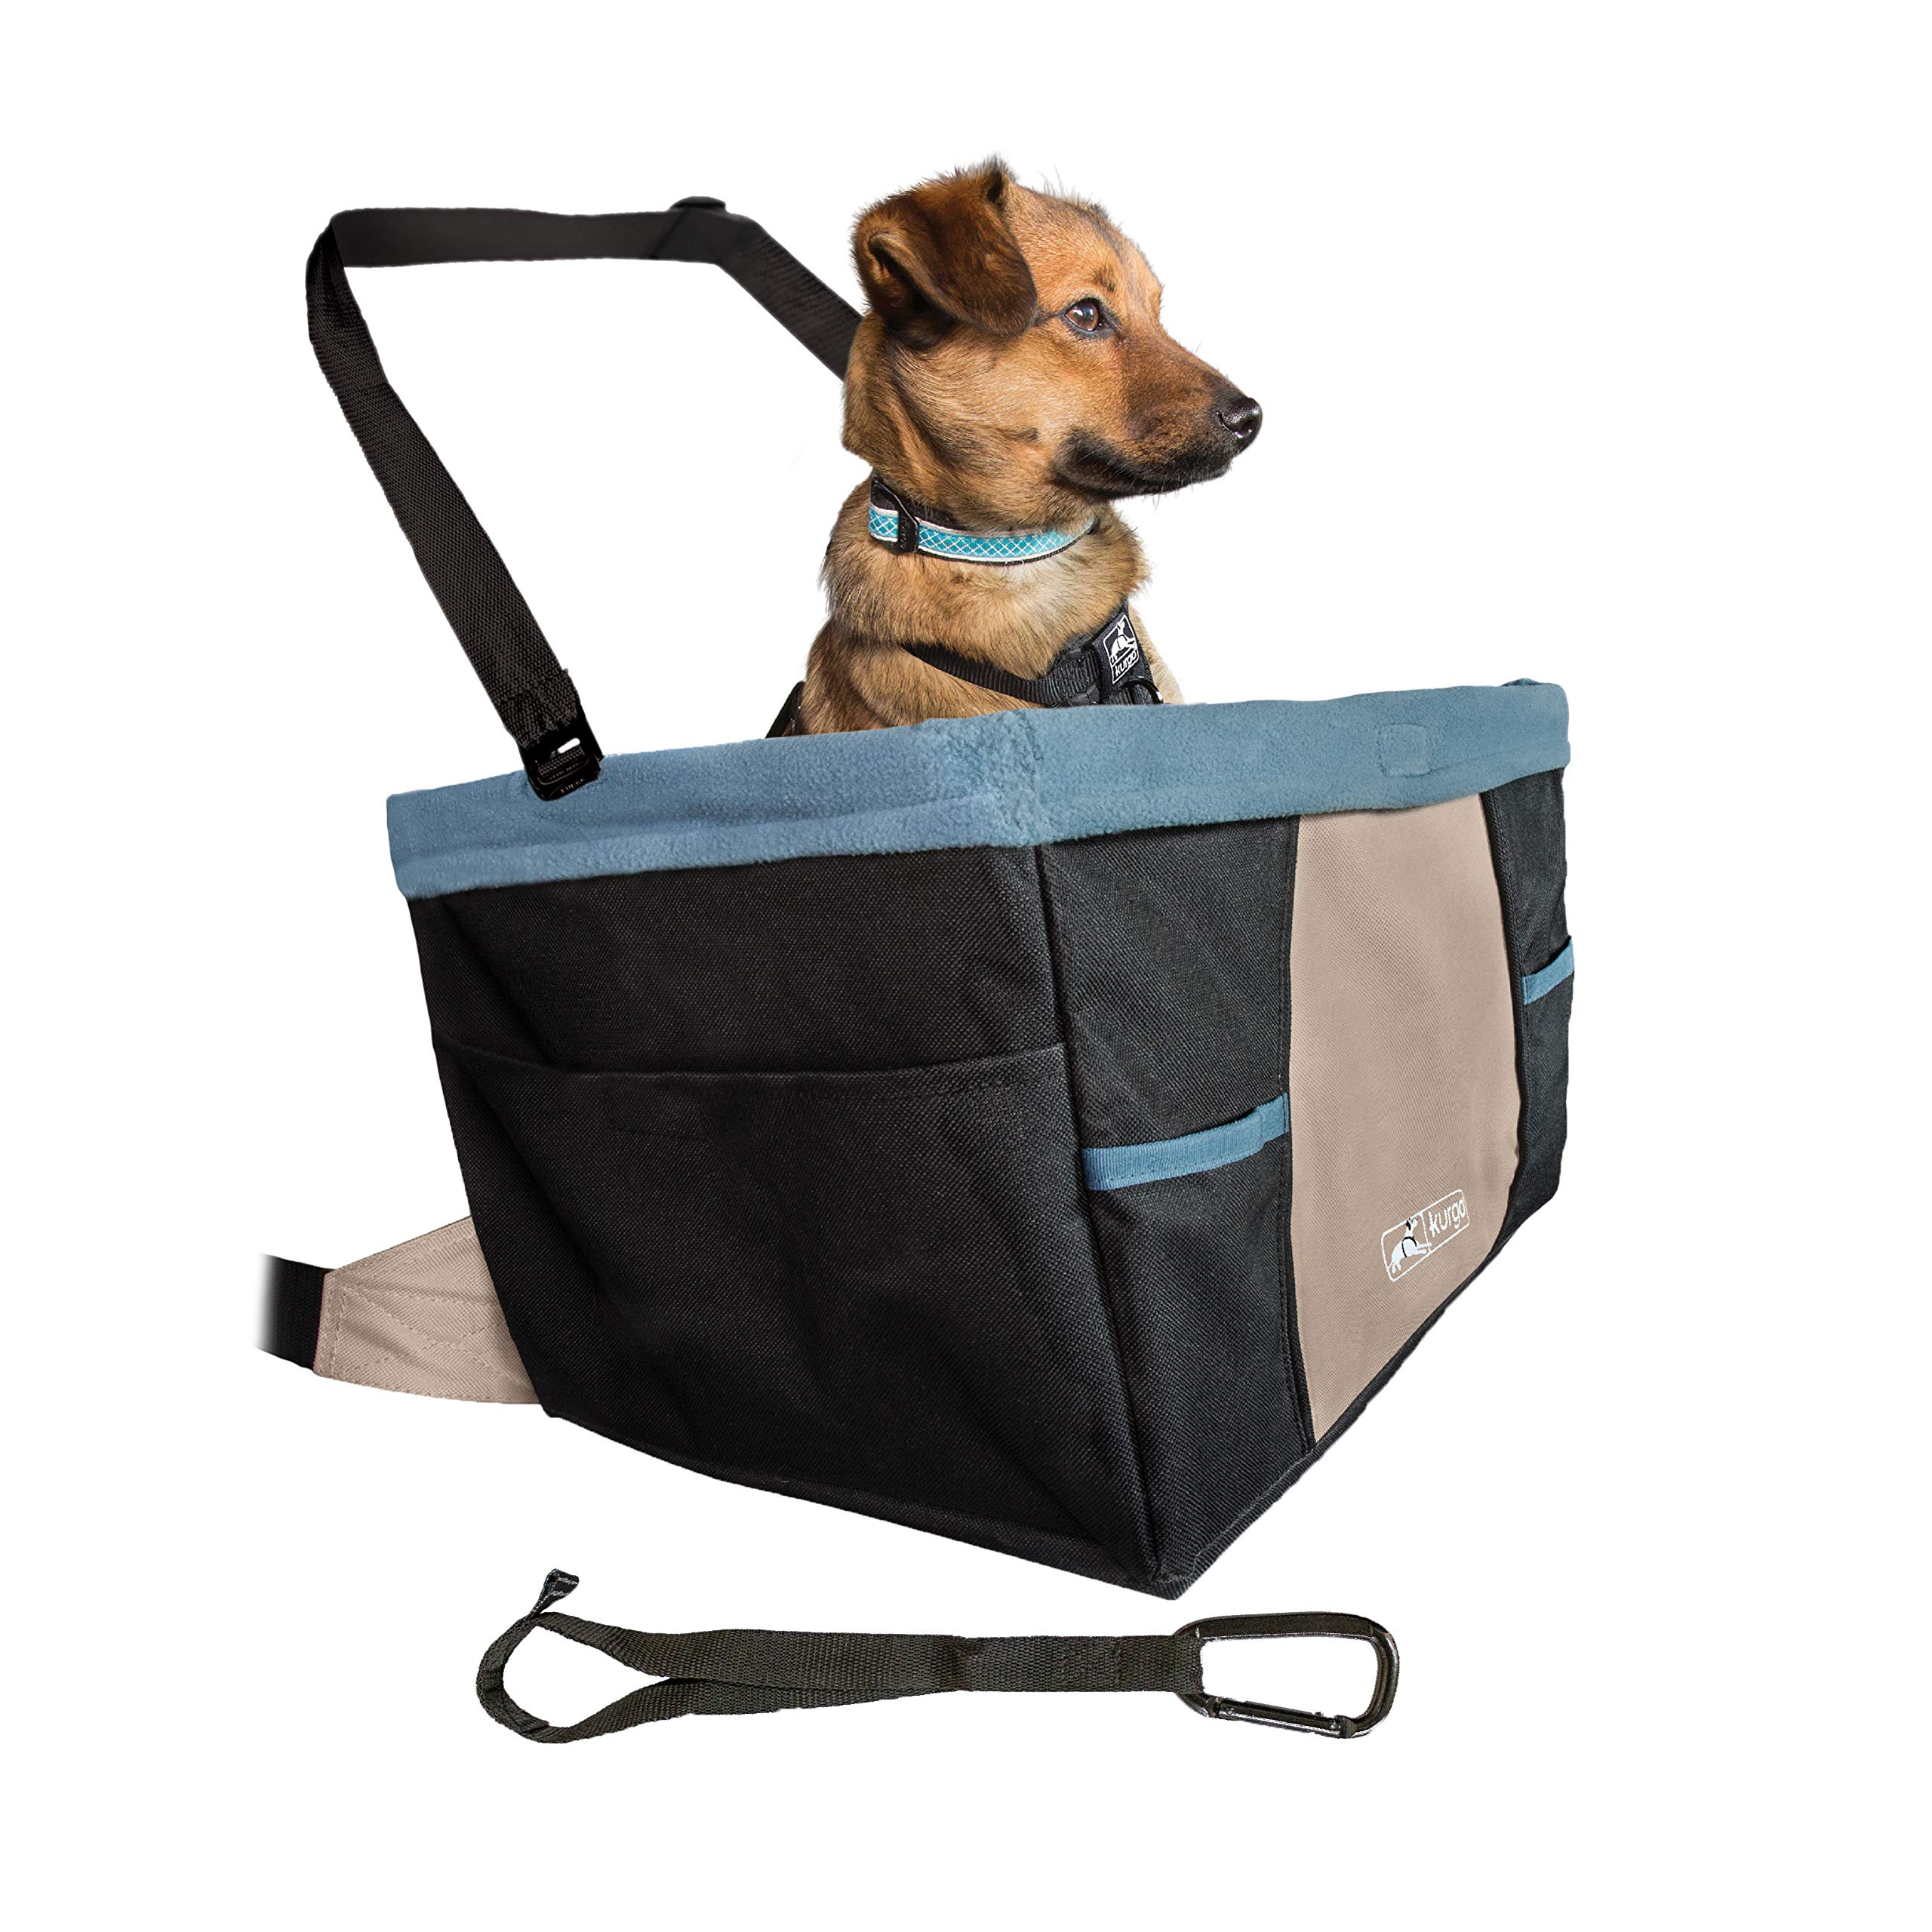 Kurgo Rover Booster Dog Car Seat with Seat Belt Tether, Black/Blue by Kurgo (Image #1)